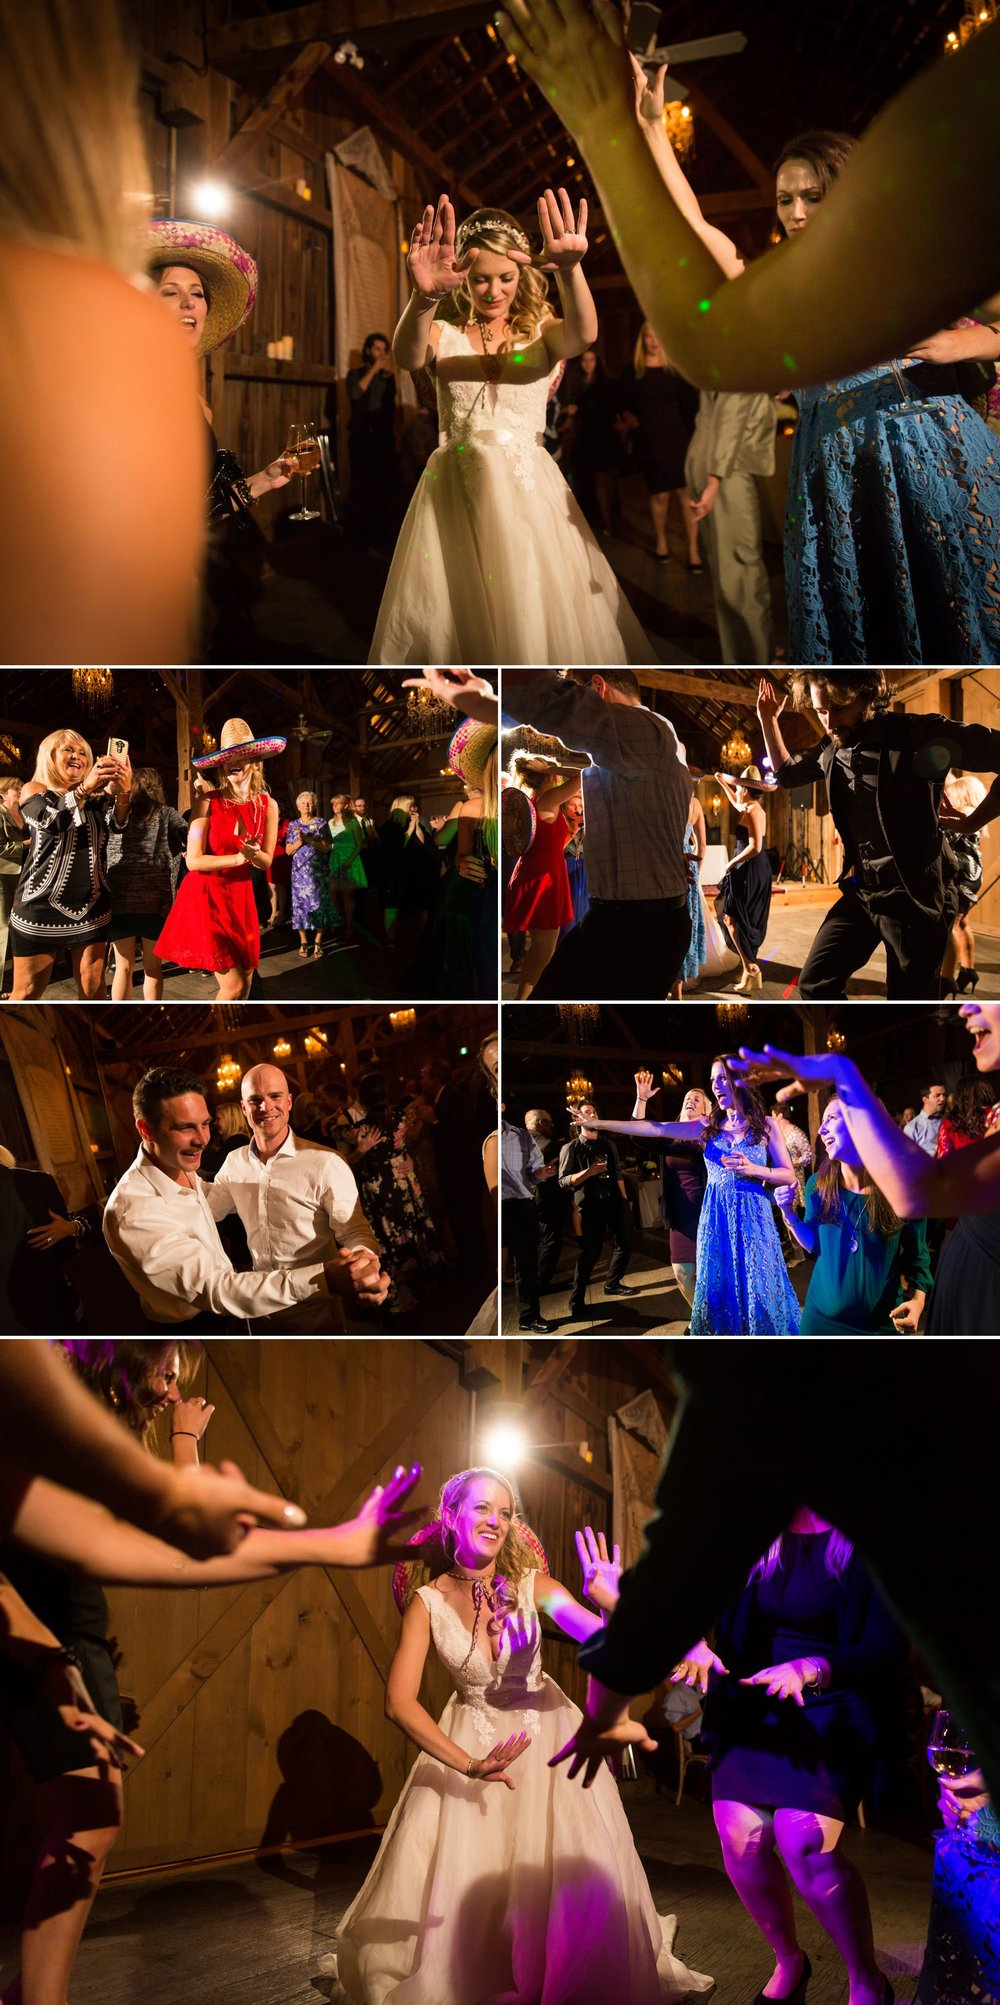 A wedding reception at Evermore Weddings & Events